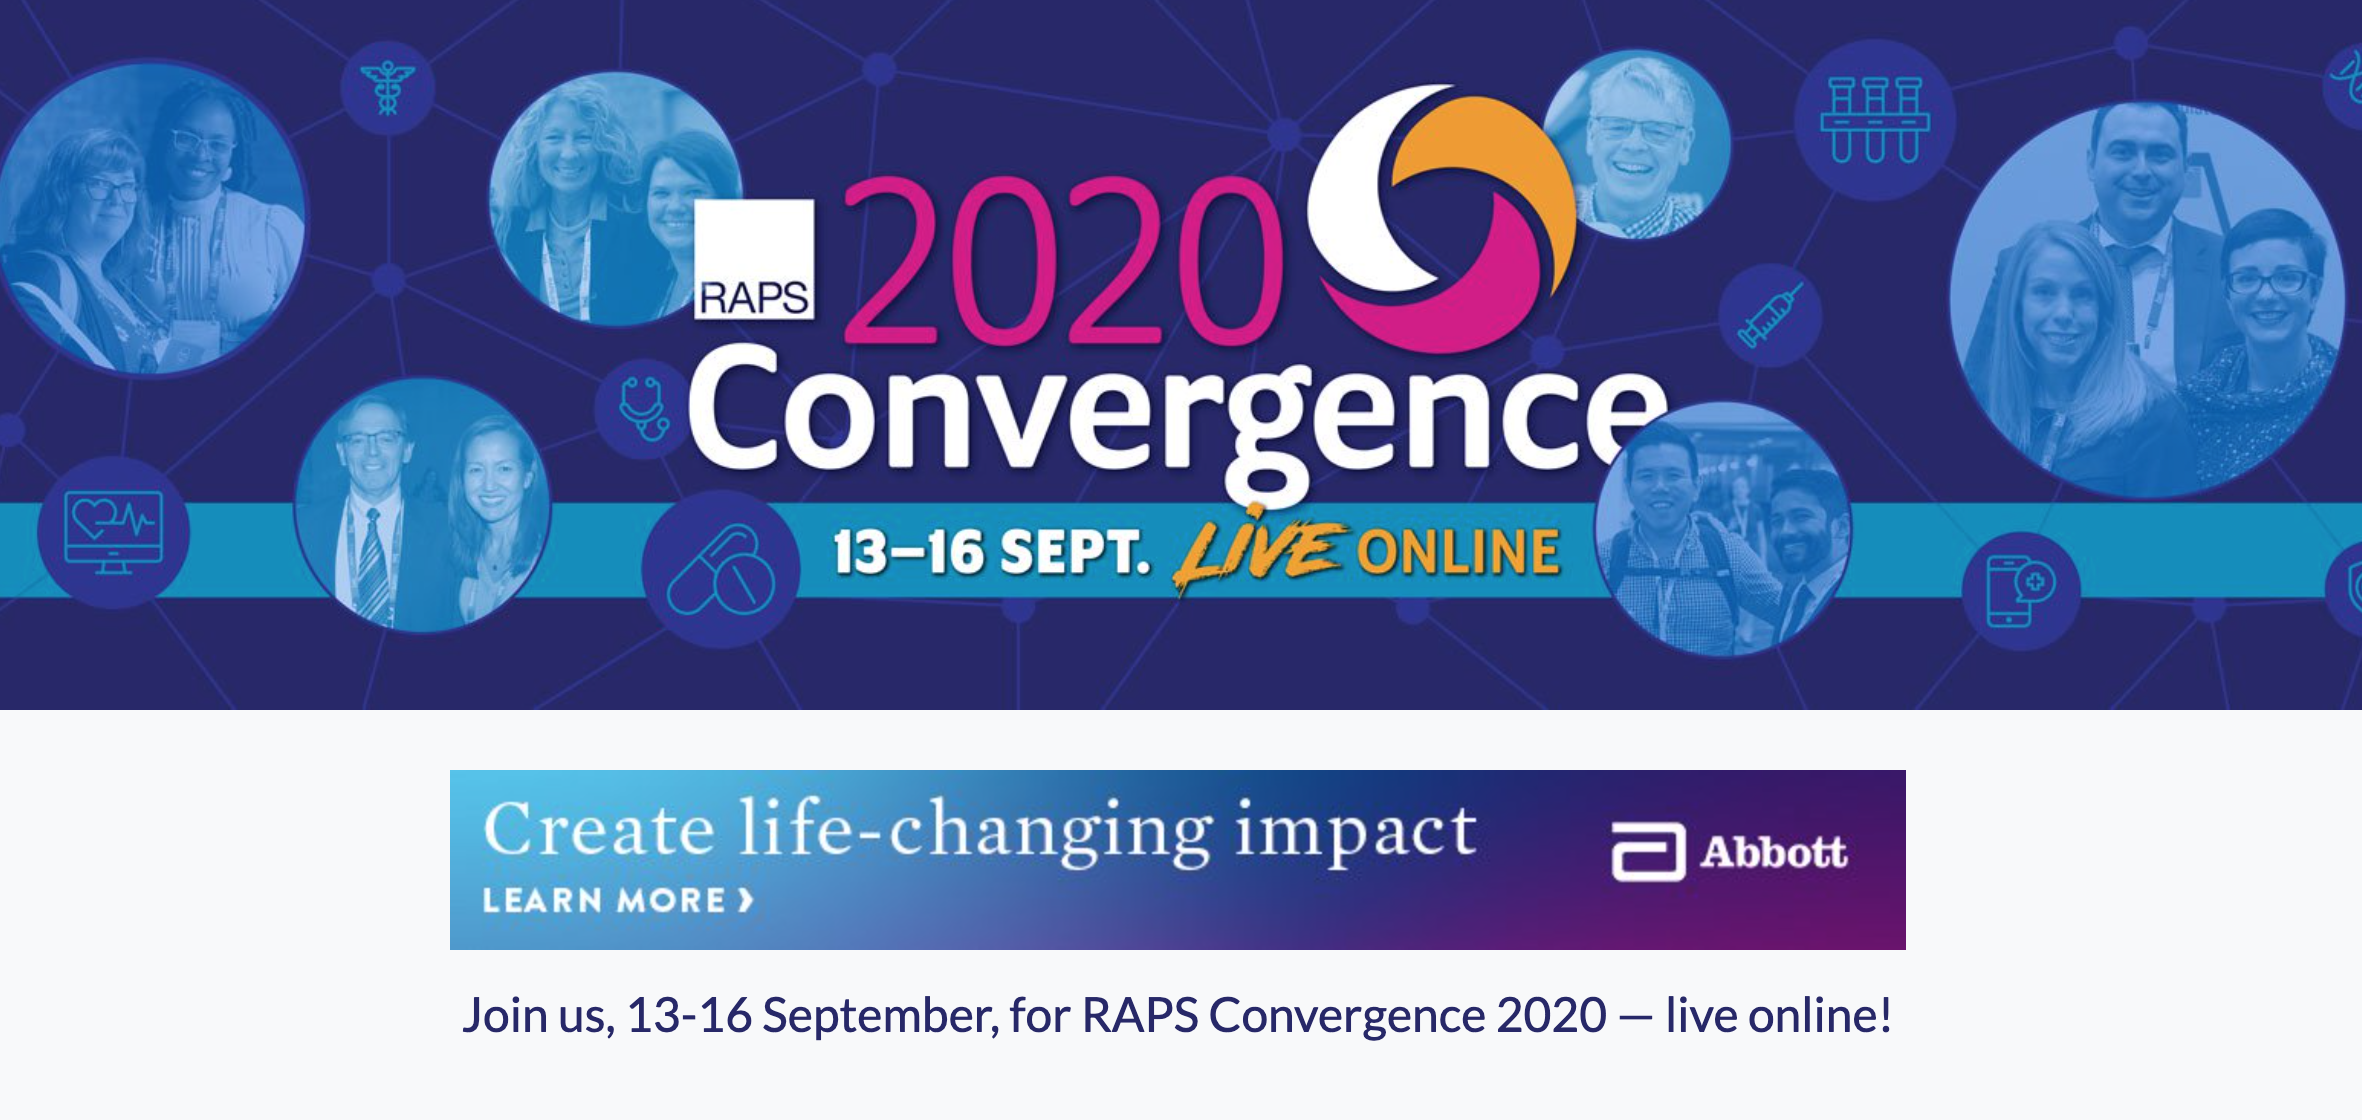 We had the chance to attend RAPS Convergence